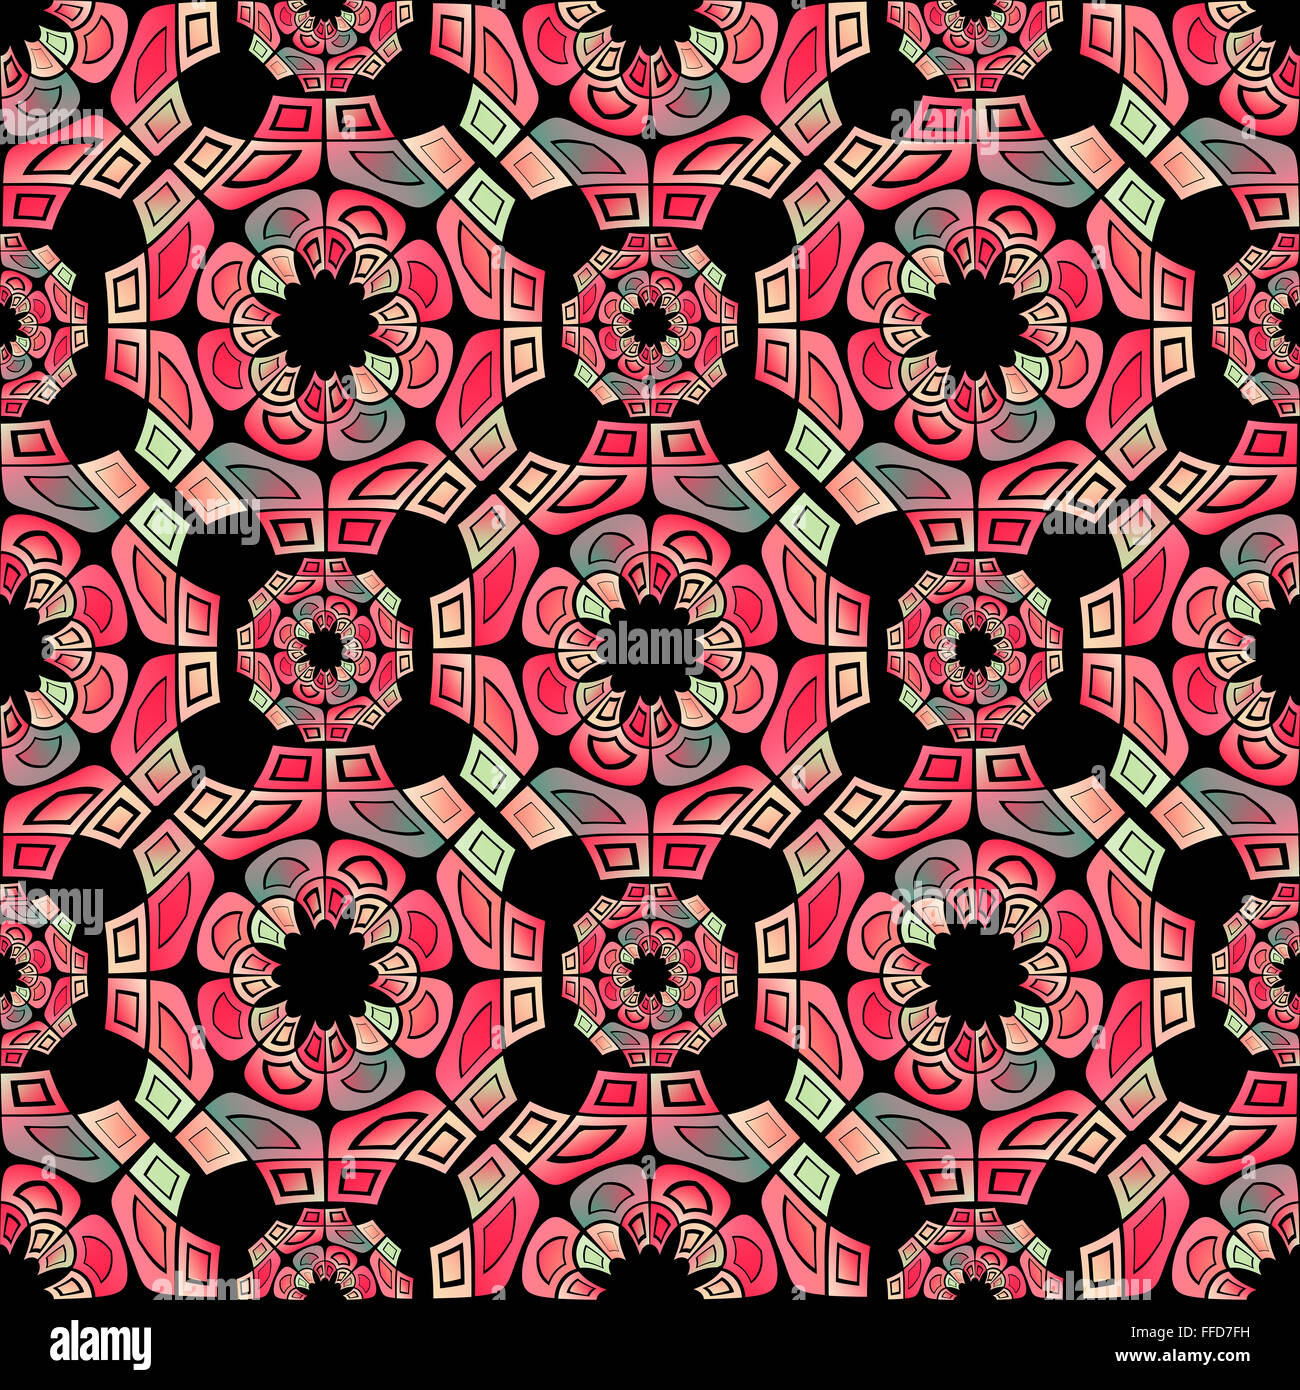 Red and green geometric tribal pattern, made with squares, on a black background. Geometric digital art. - Stock Image